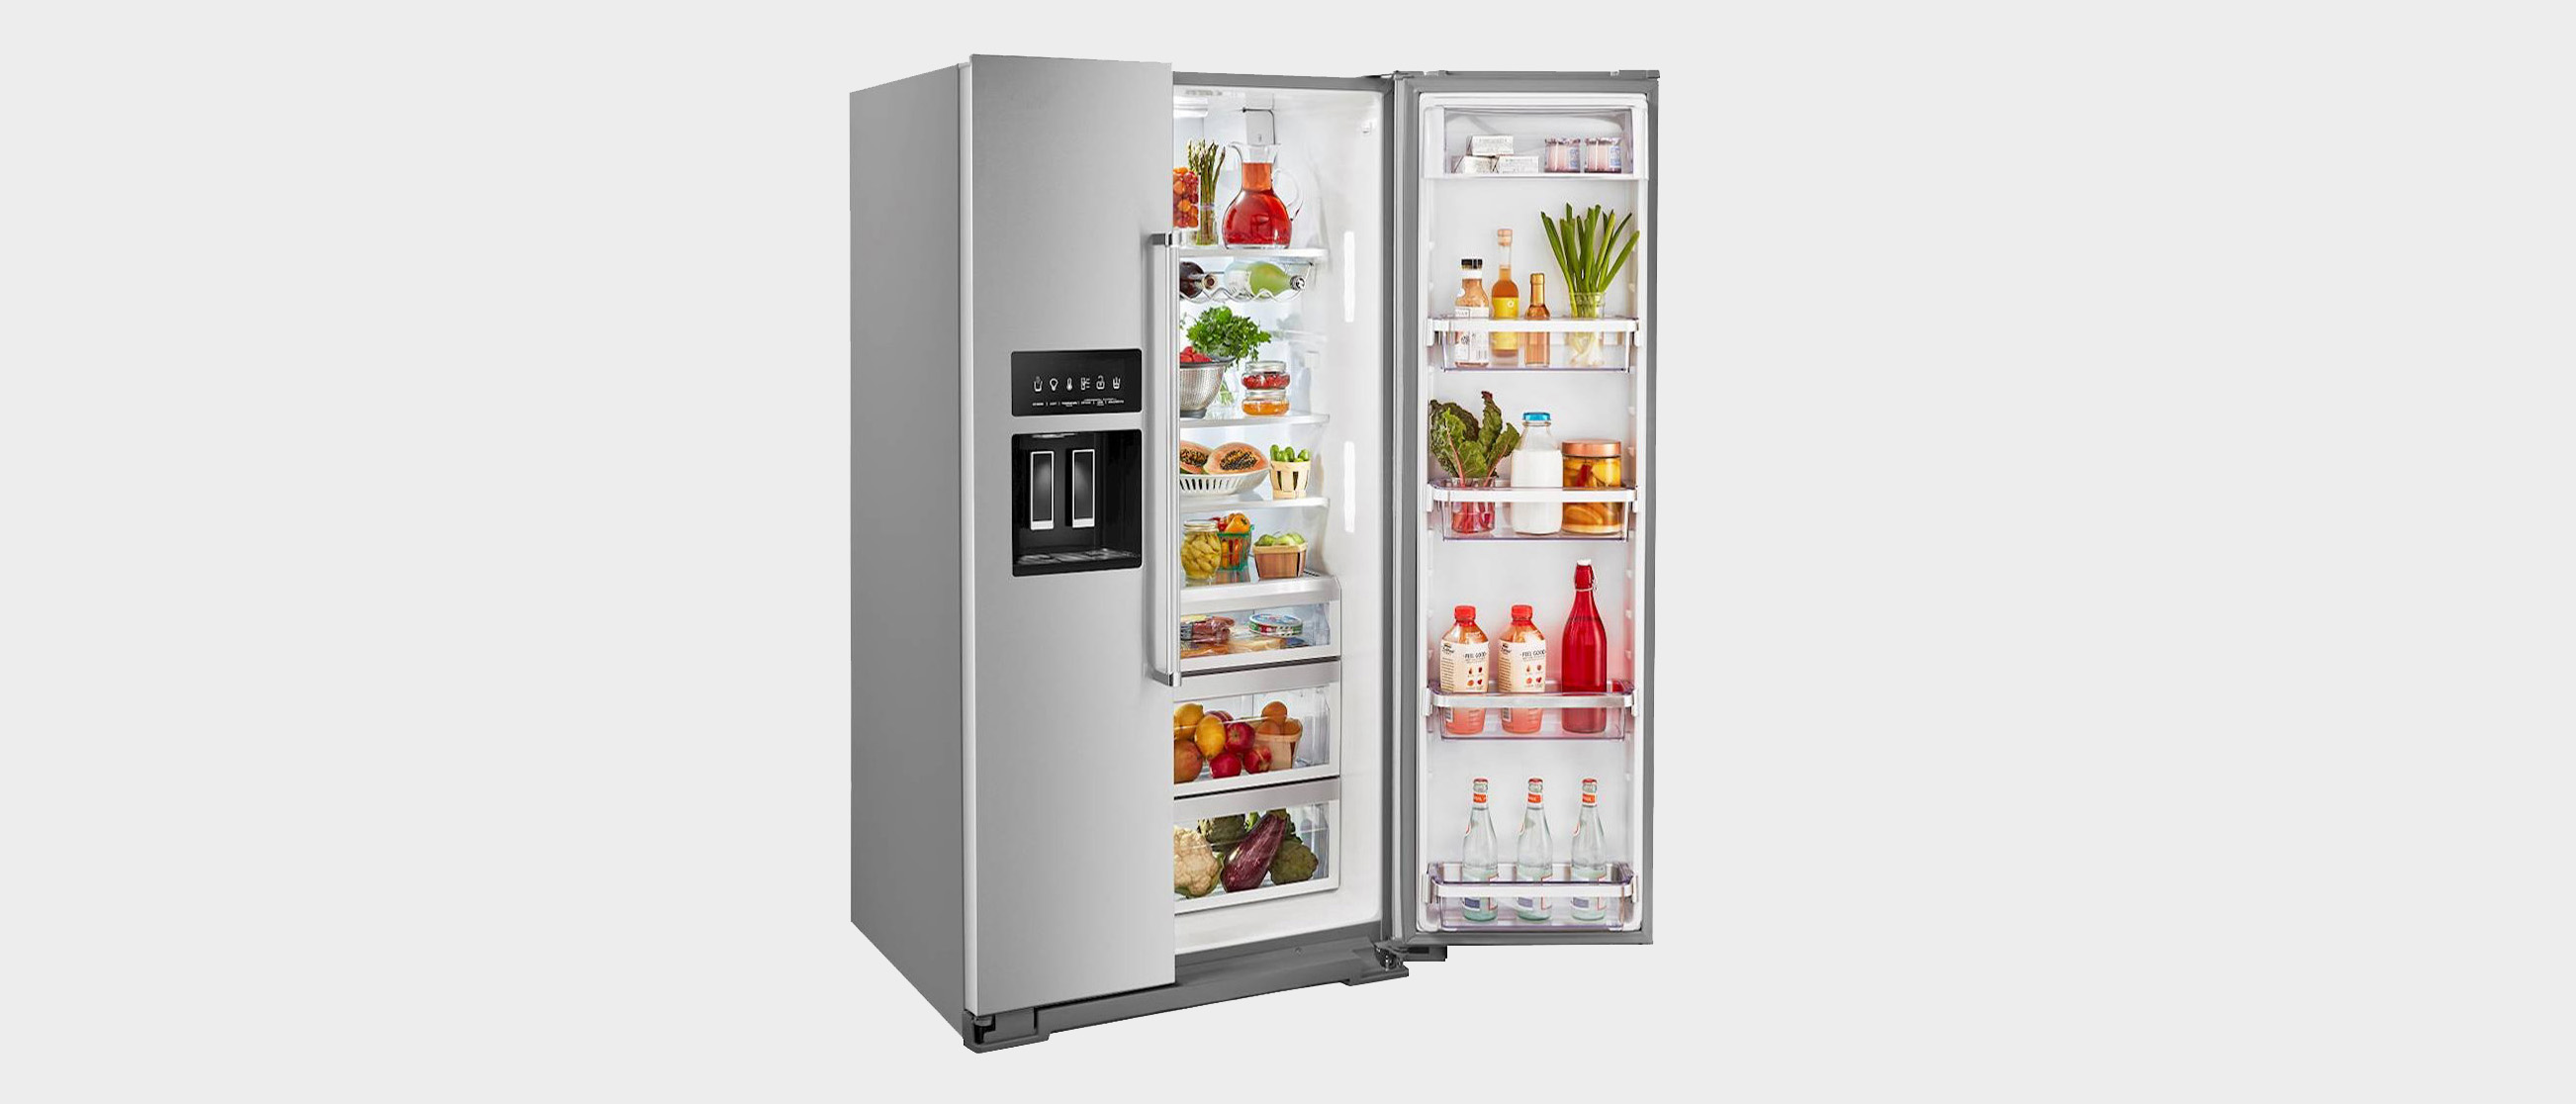 KitchenAid KRSF705HPS Side-by-Side Refrigerator Review | Top ...